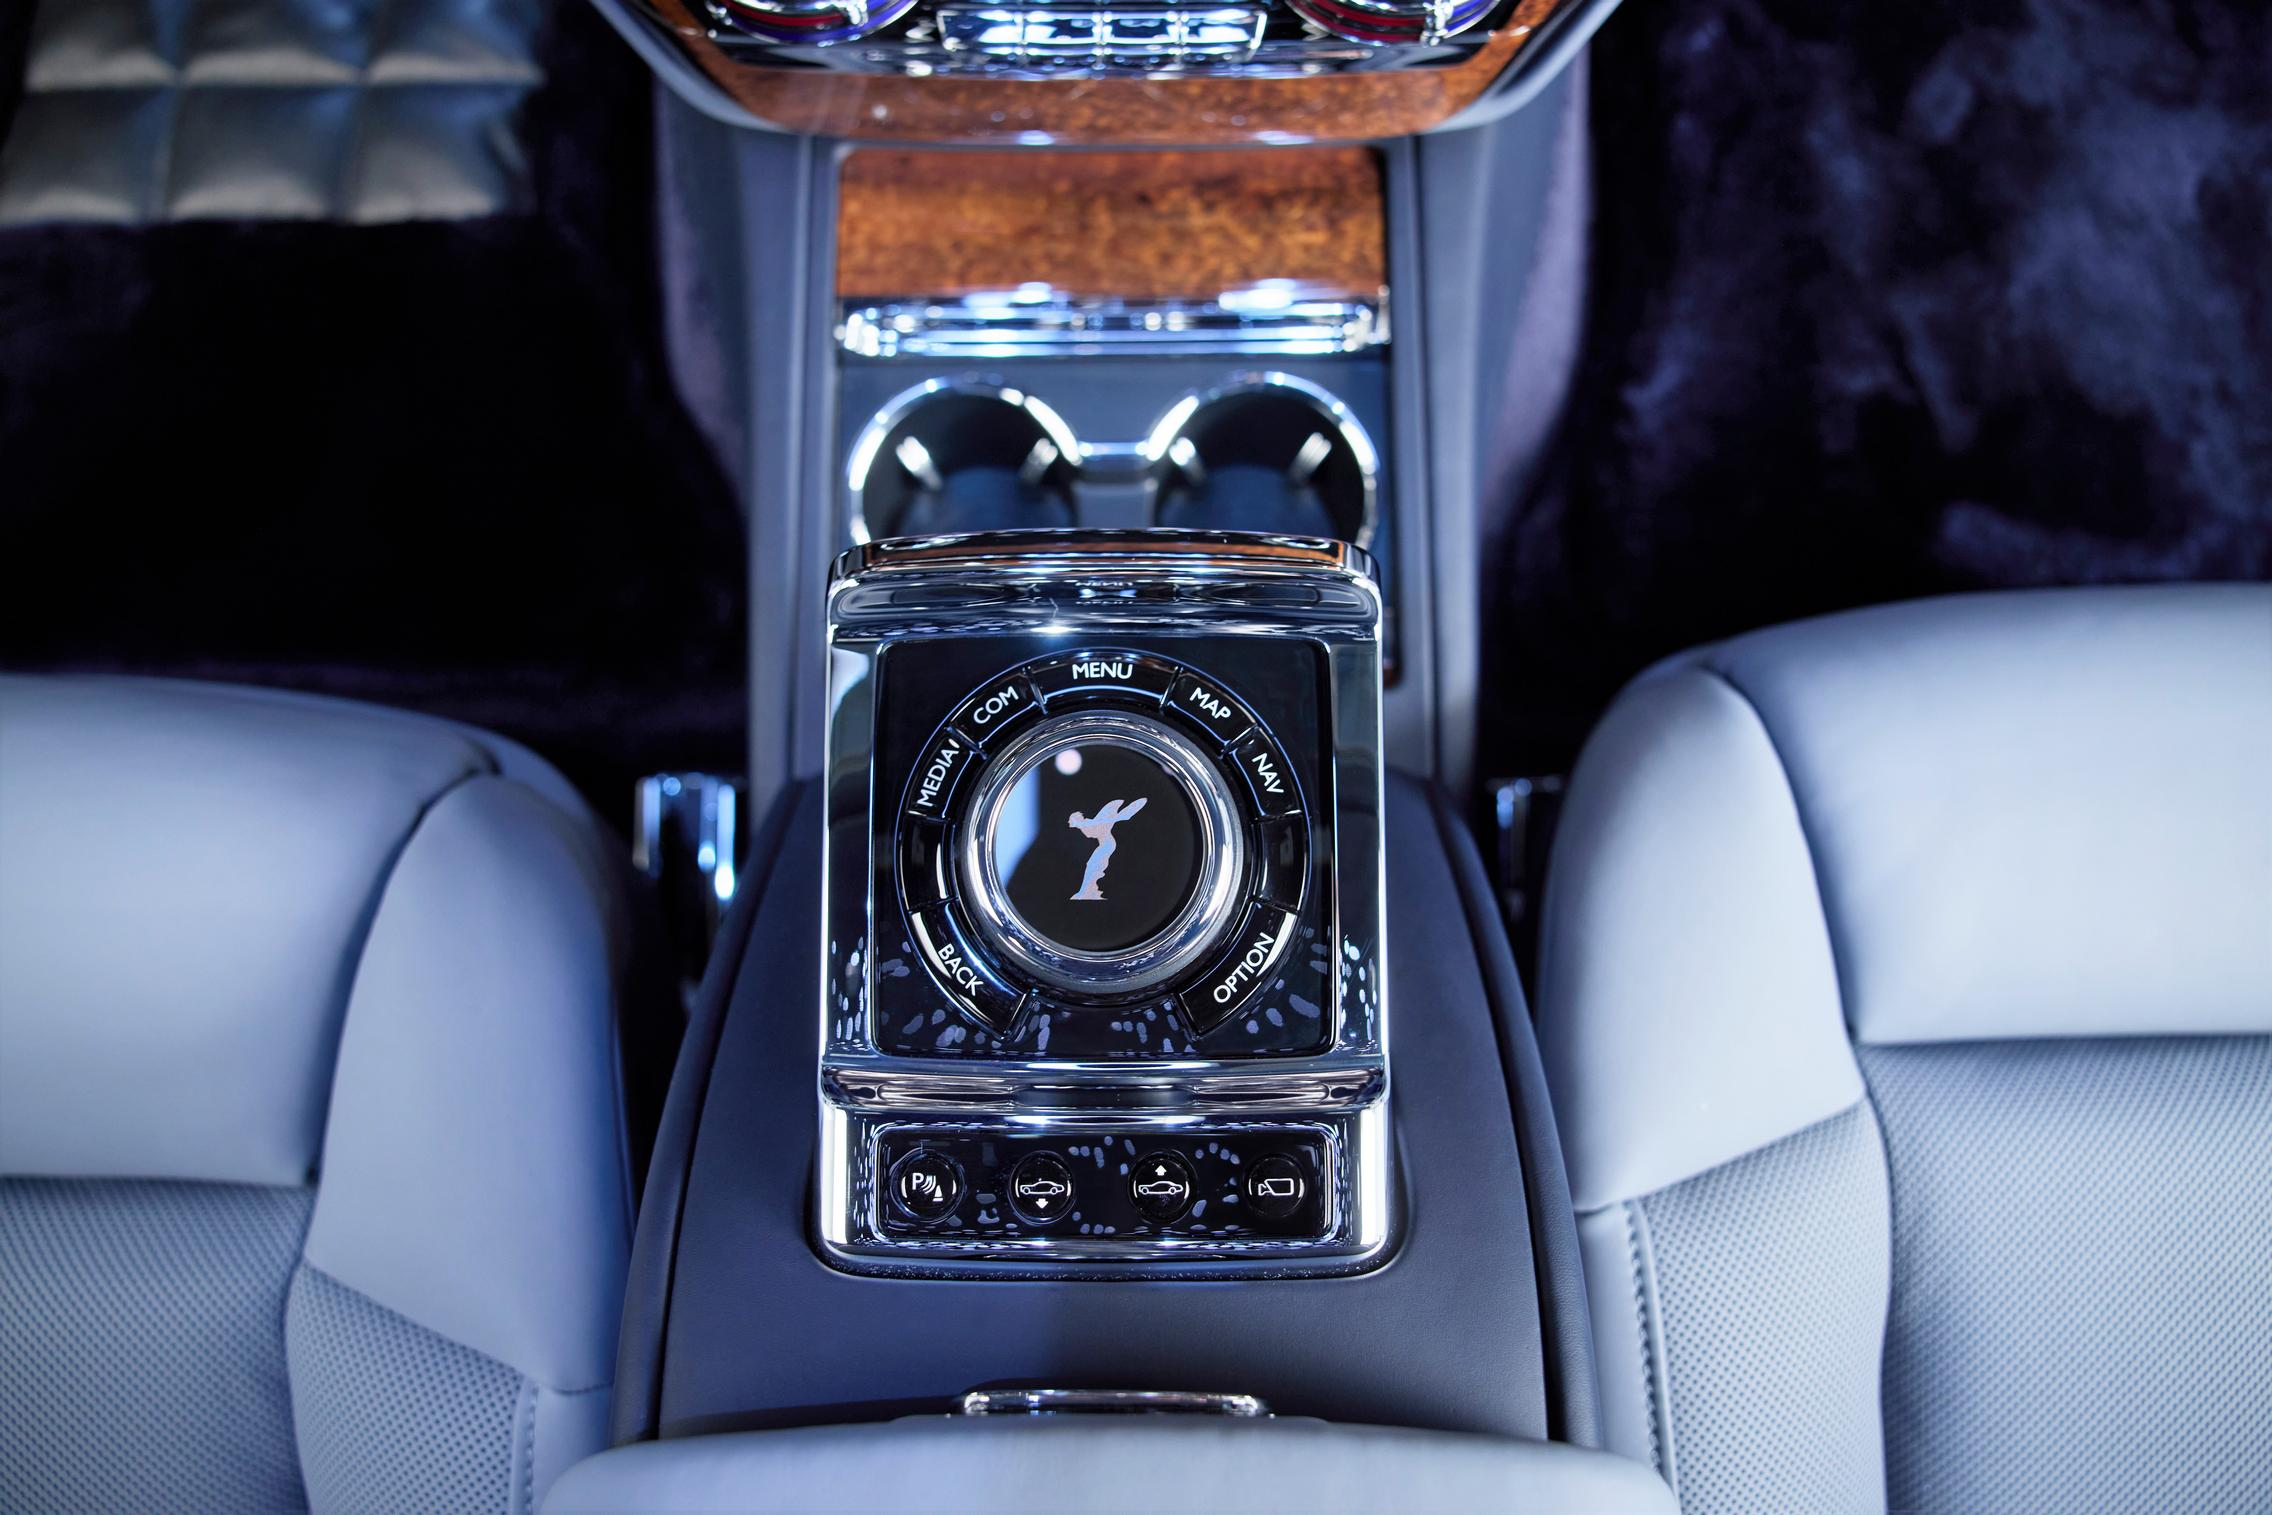 Rolls-Royce Phantom center console